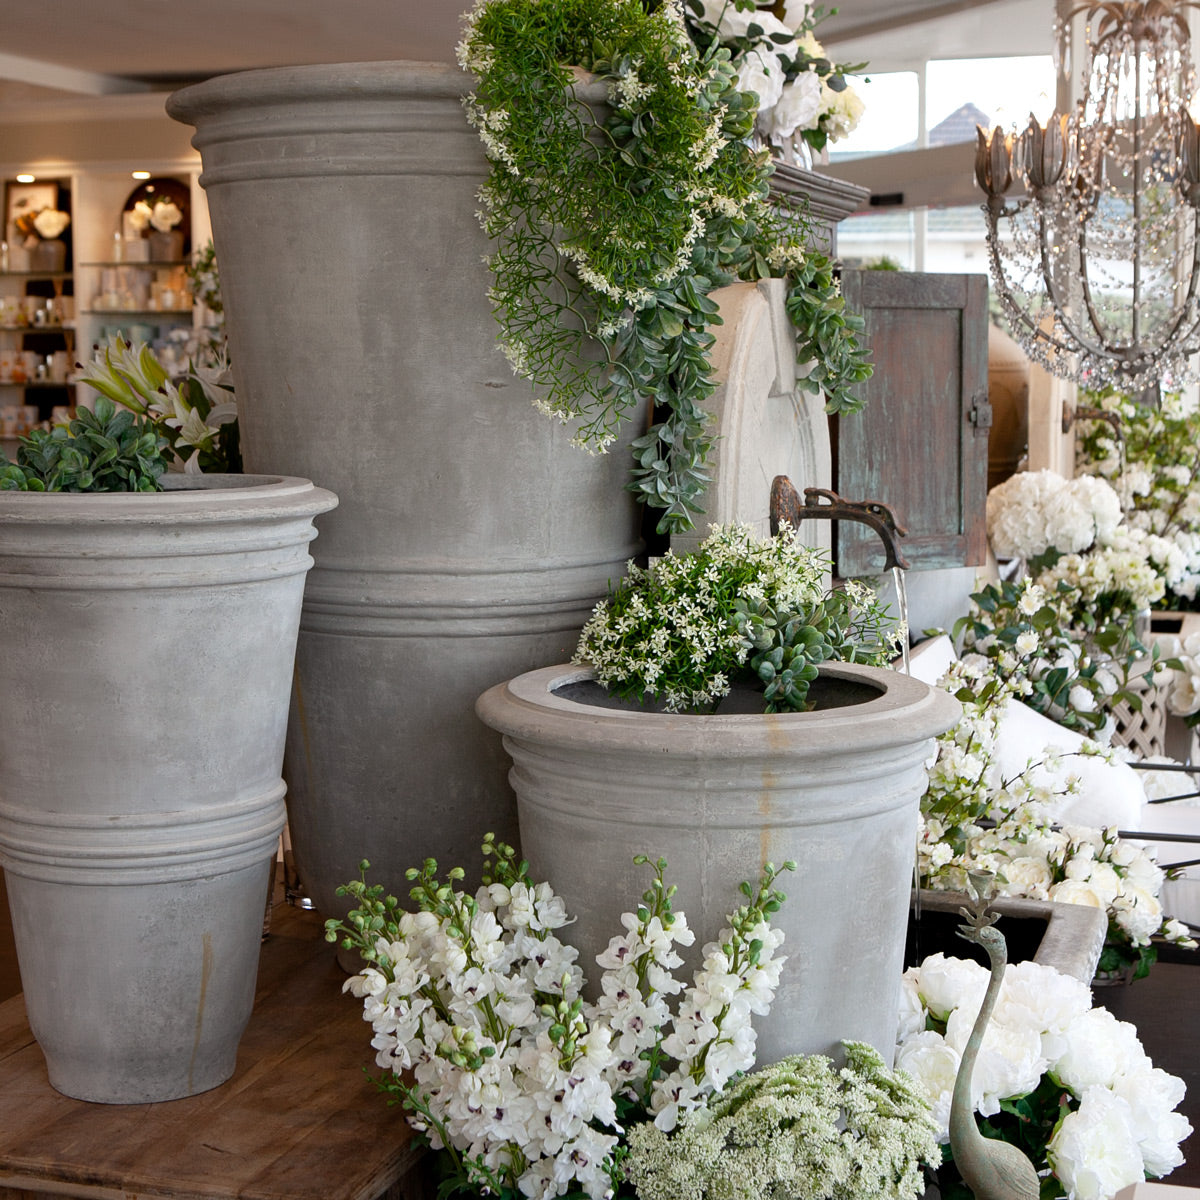 Visconti pots filled with white flowers.